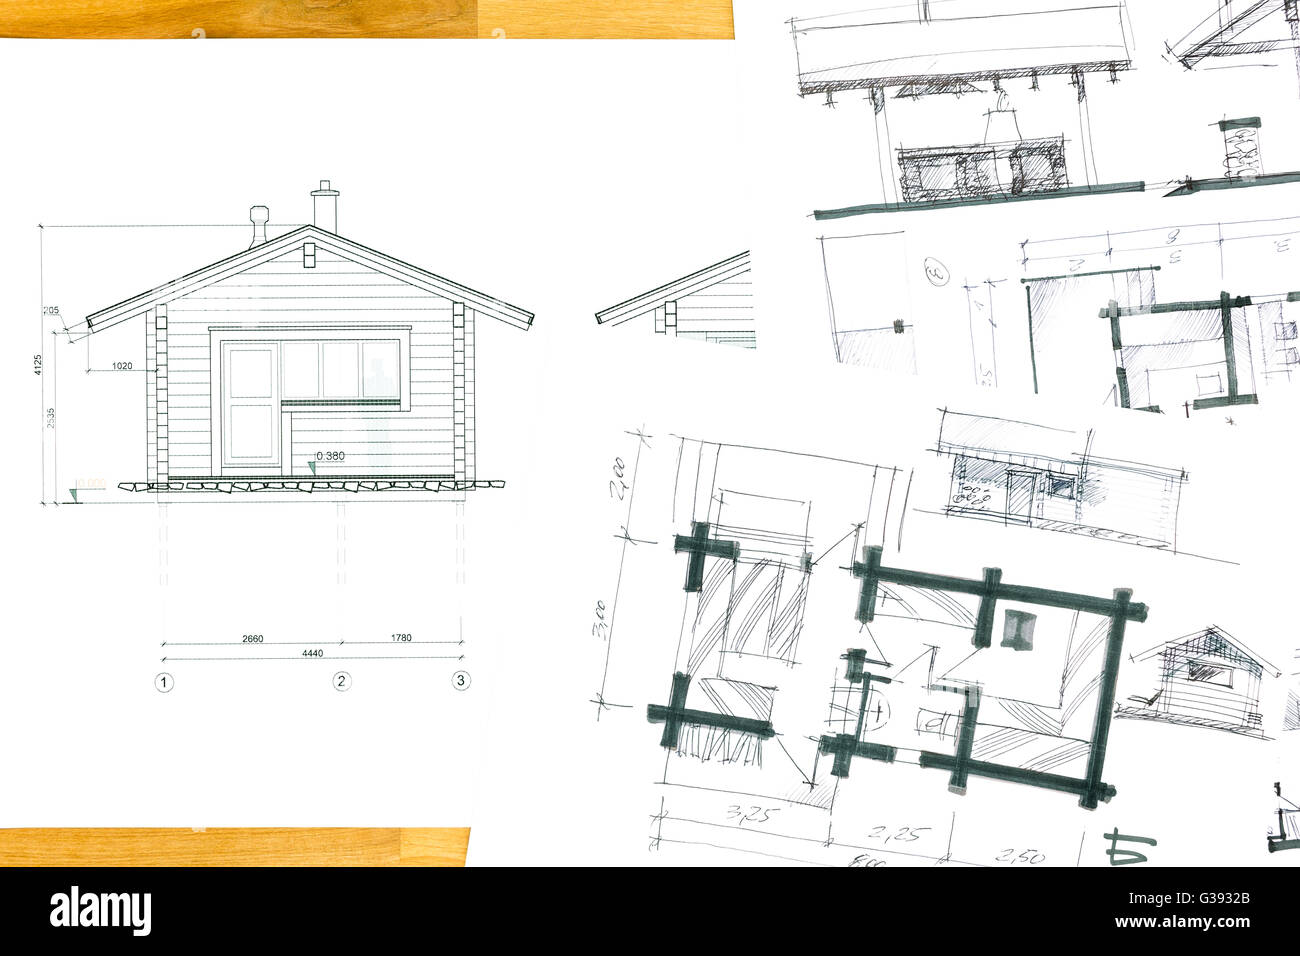 Architectural sketch drawings and blueprints for home for Renovation drawings